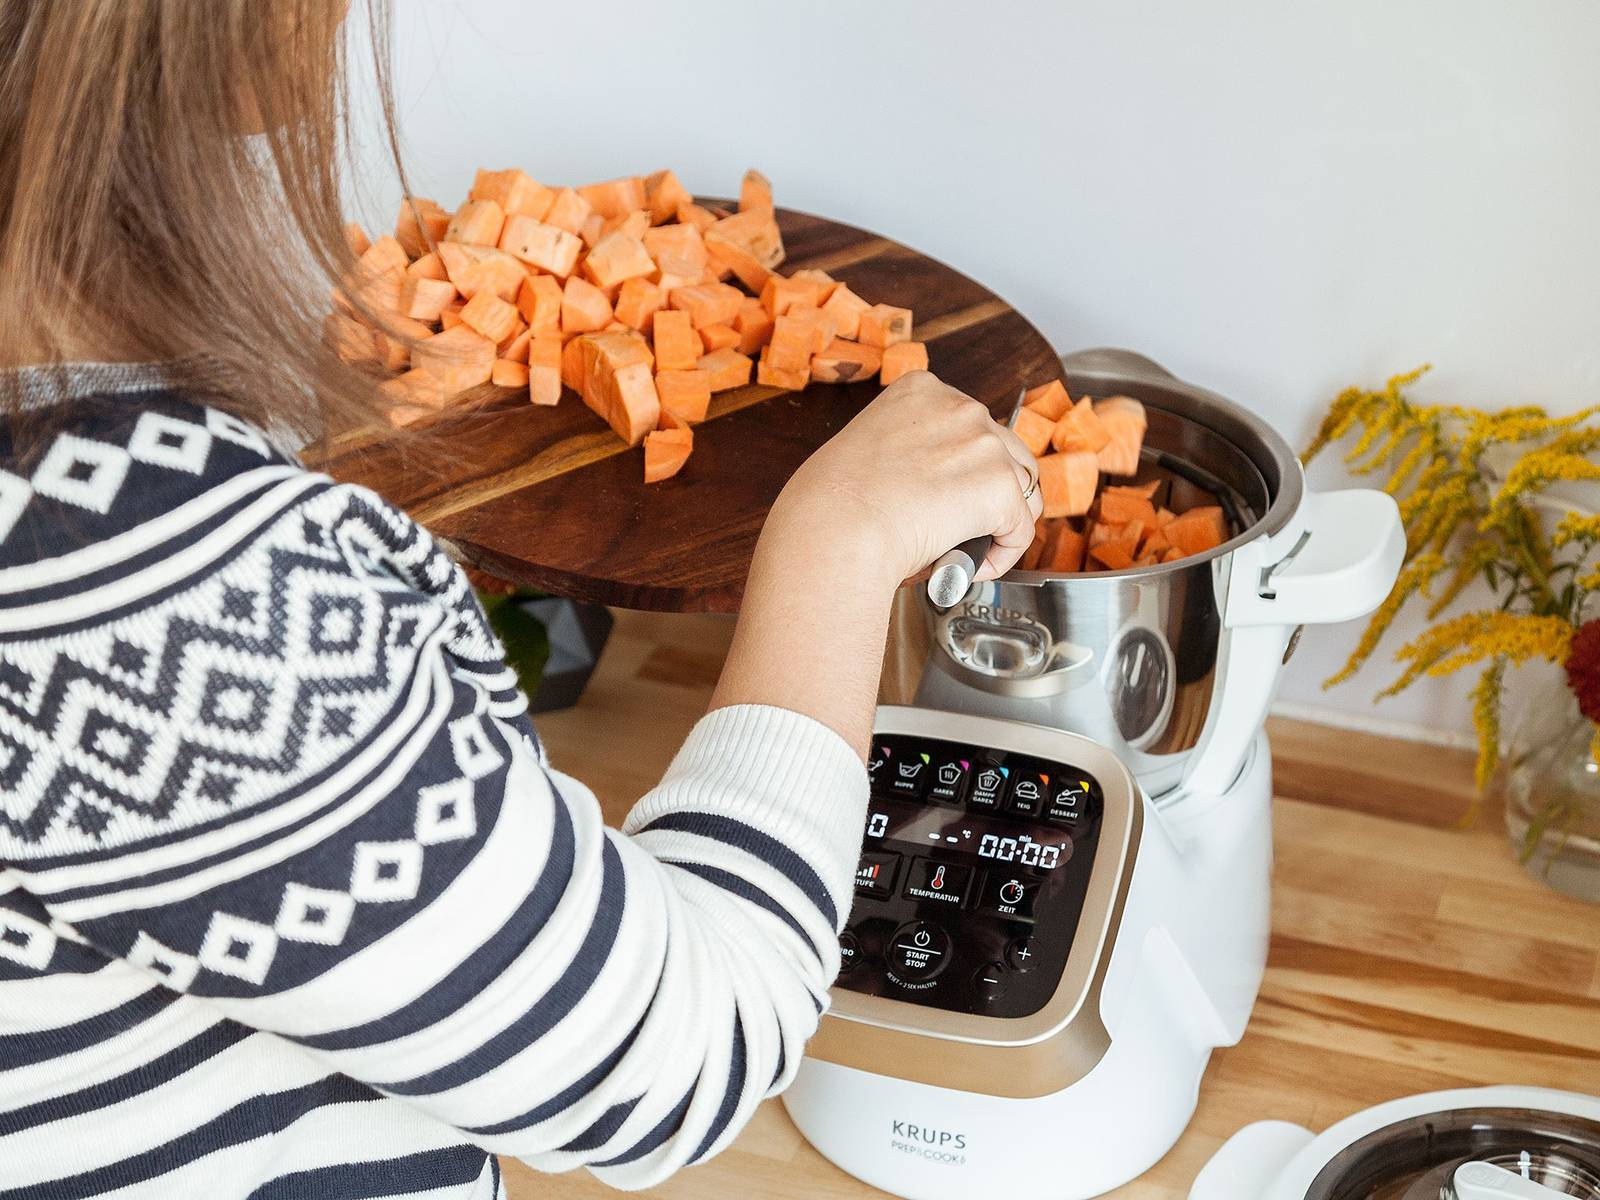 To make the purée, peel and dice sweet potatoes. Peel and roughly chop remaining garlic. Add water to the bowl of the Prep&Cook and insert the steam basket. Add diced sweet potato and garlic. Cover and run steam program for approx. 25 – 30 min.